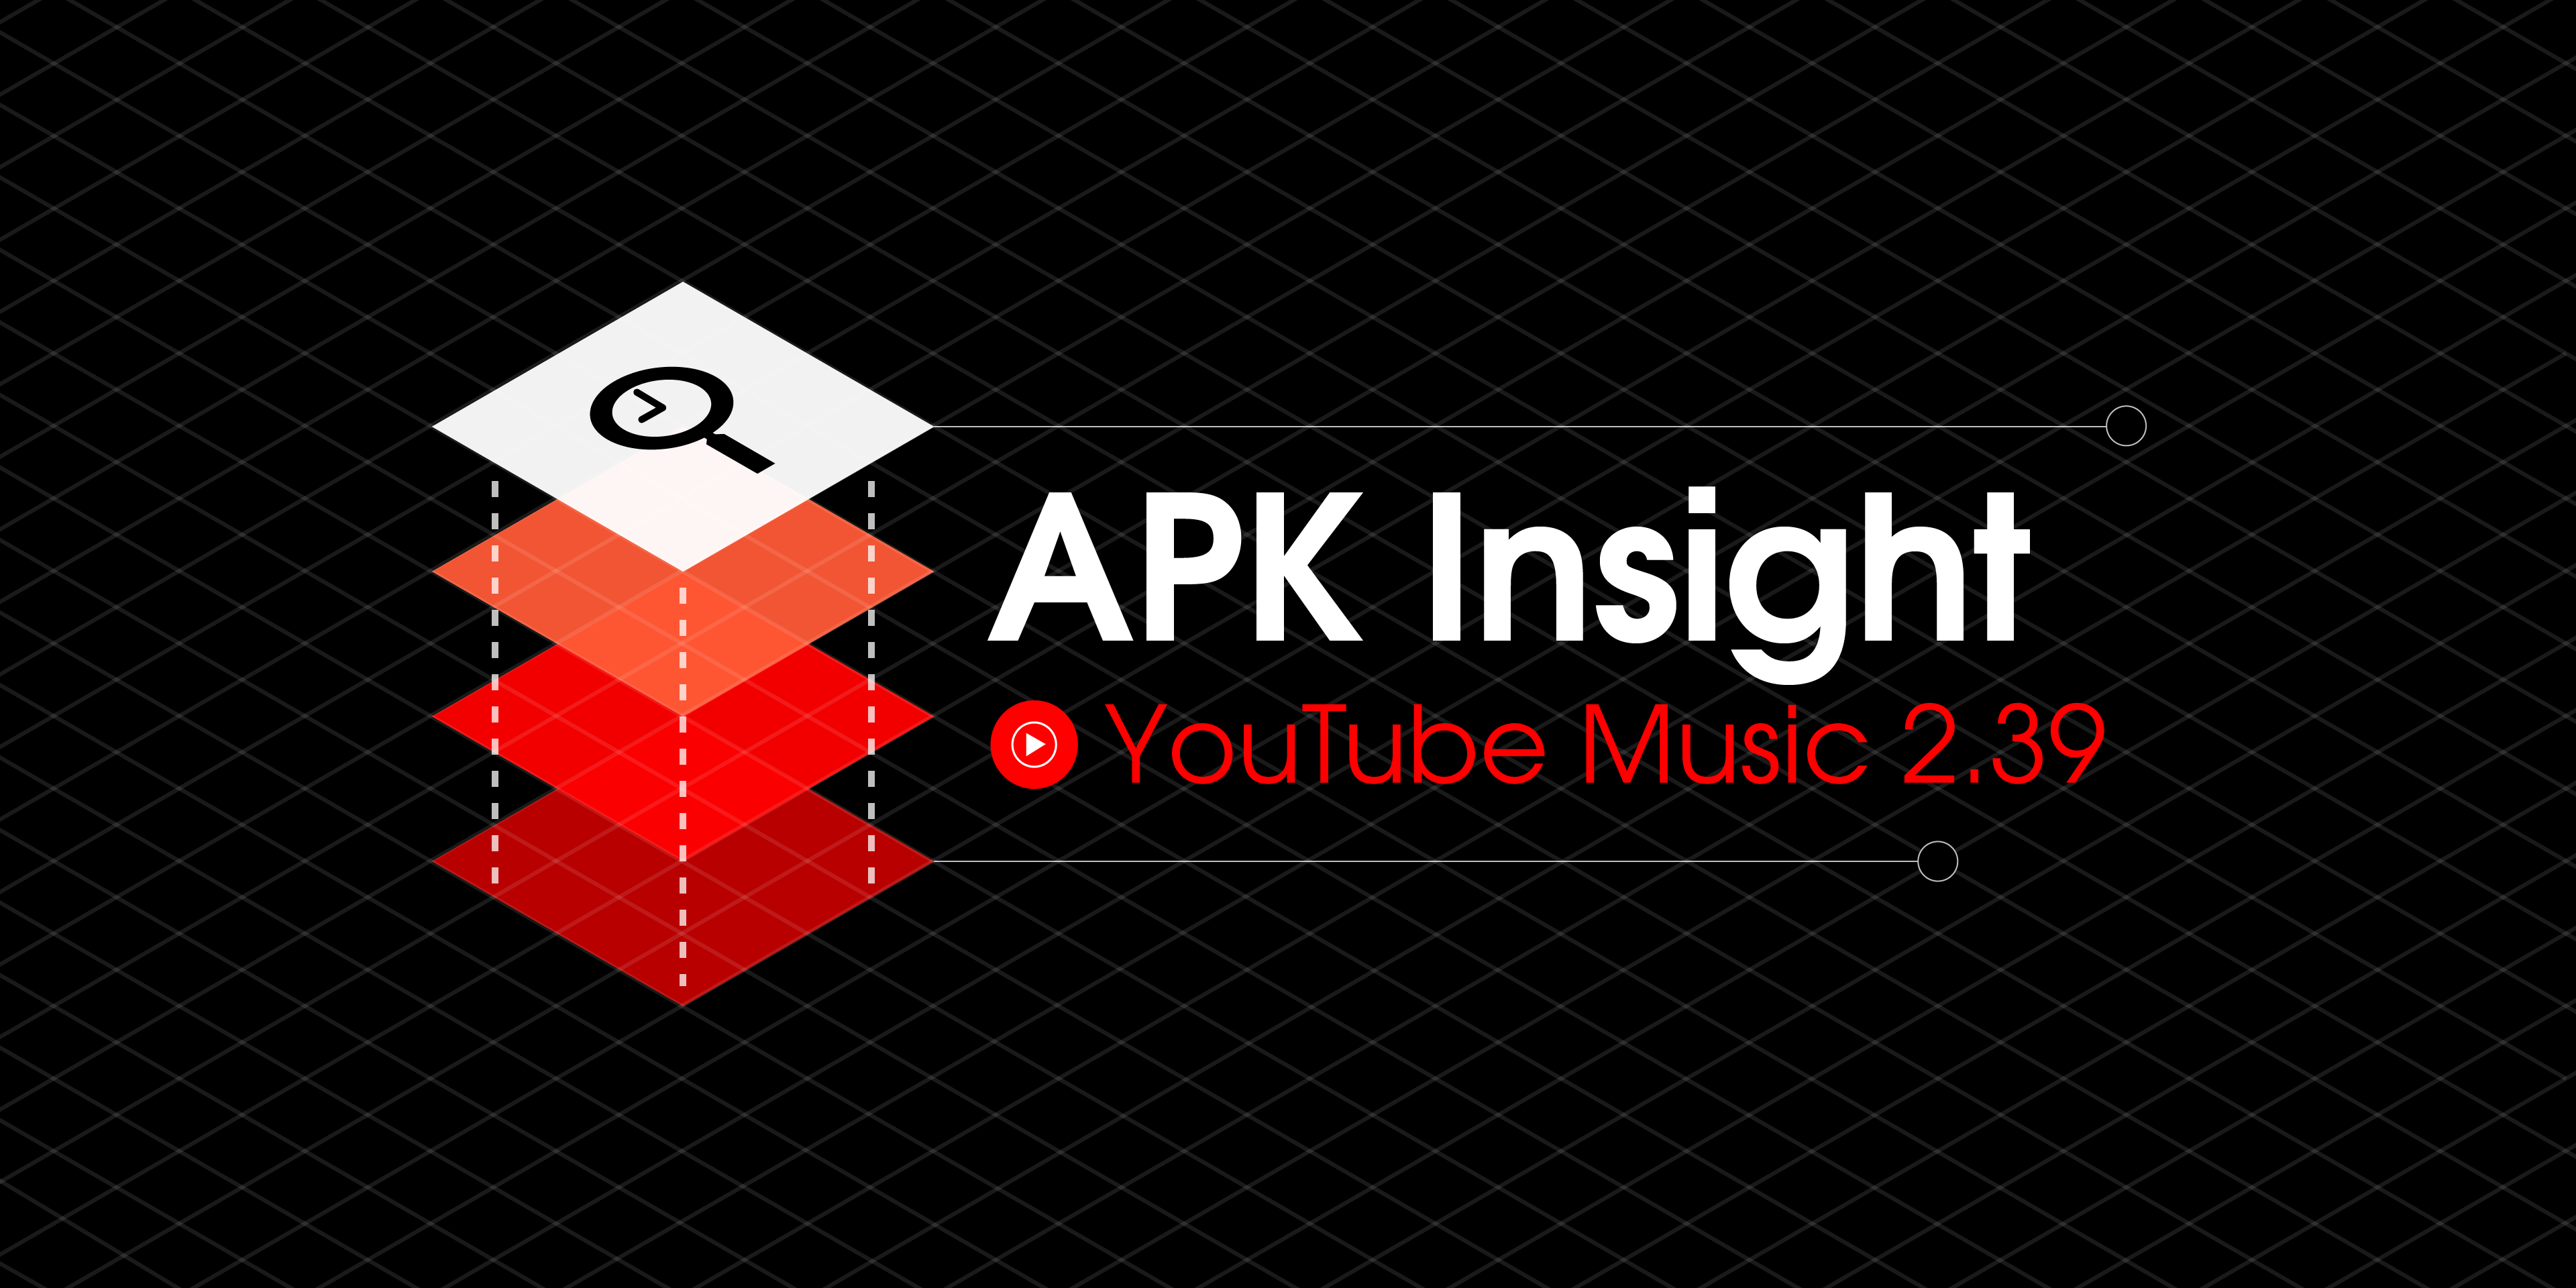 youtube music 2 39 preps seperate audio video quality for offline downloads apk insight